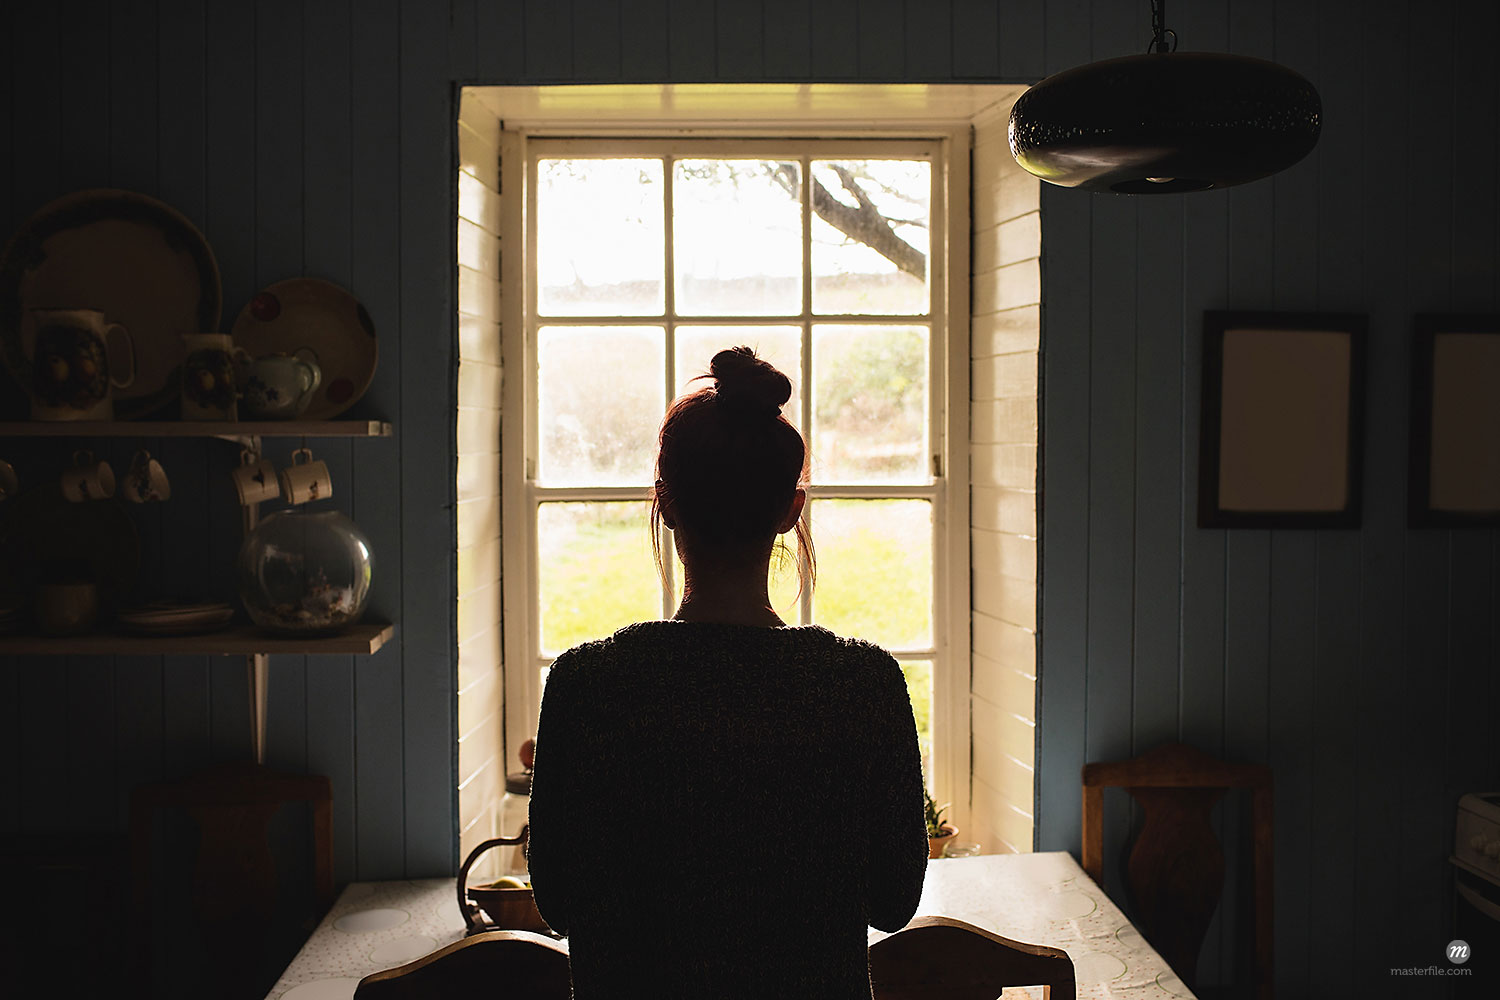 Woman silhouetted in front of window © Masterfile